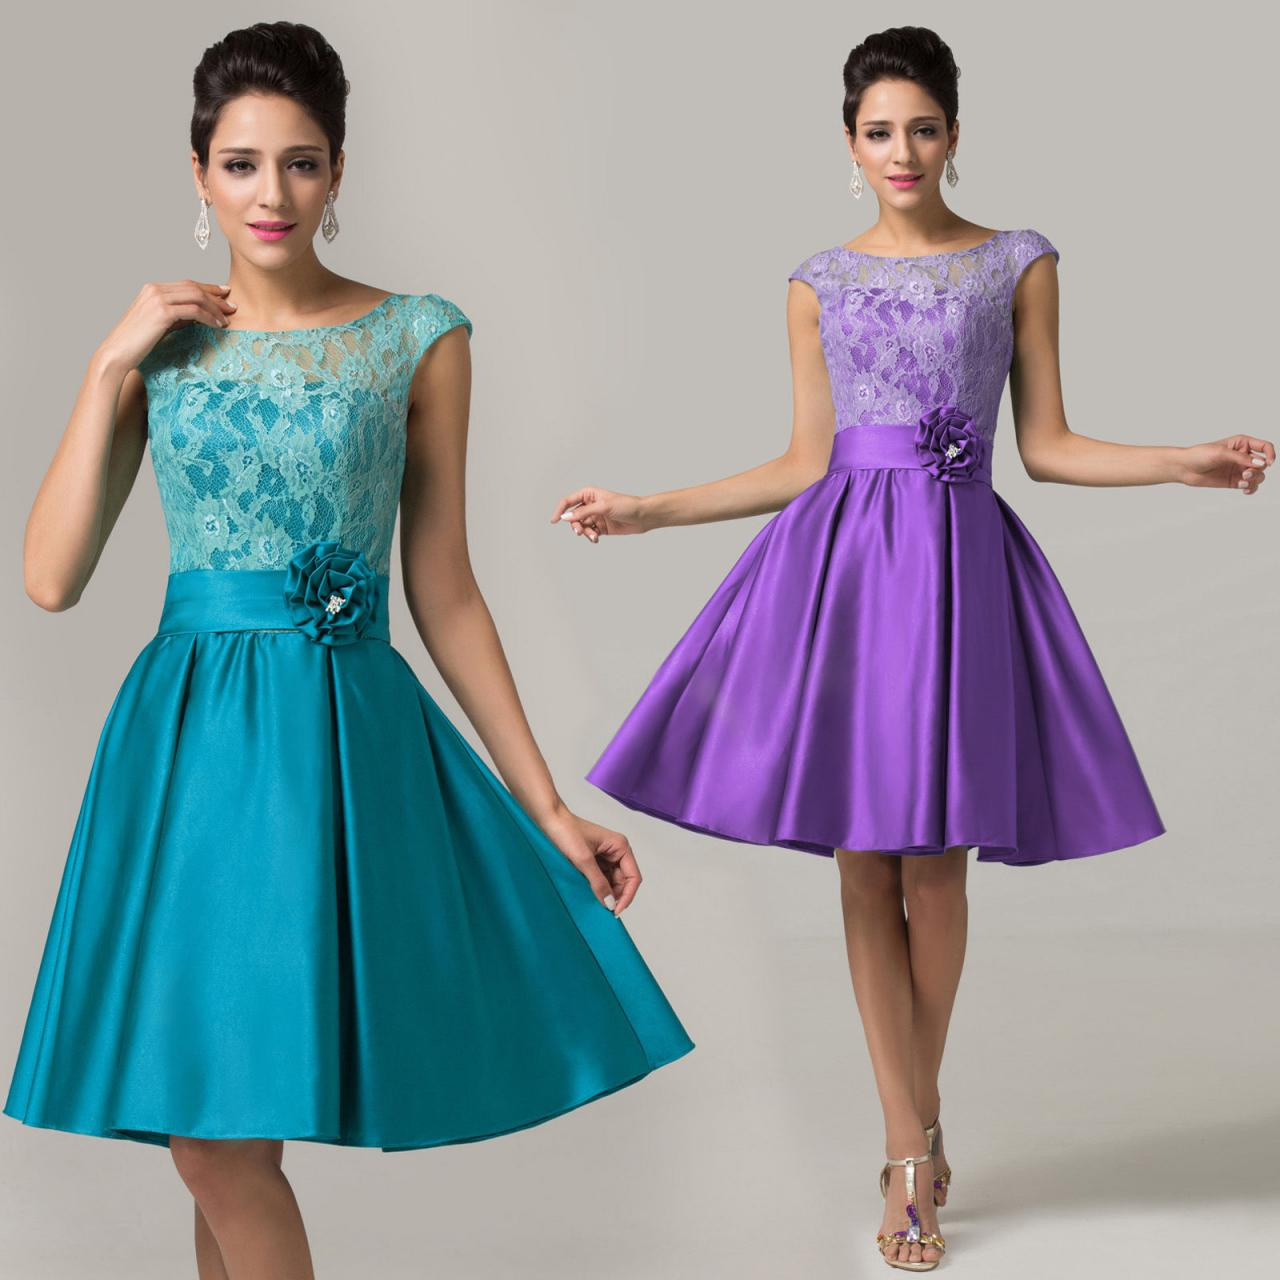 Retro Sexy Teal Satin Cocktail Dresses Party Prom Rockabilly Homecoming Dresses